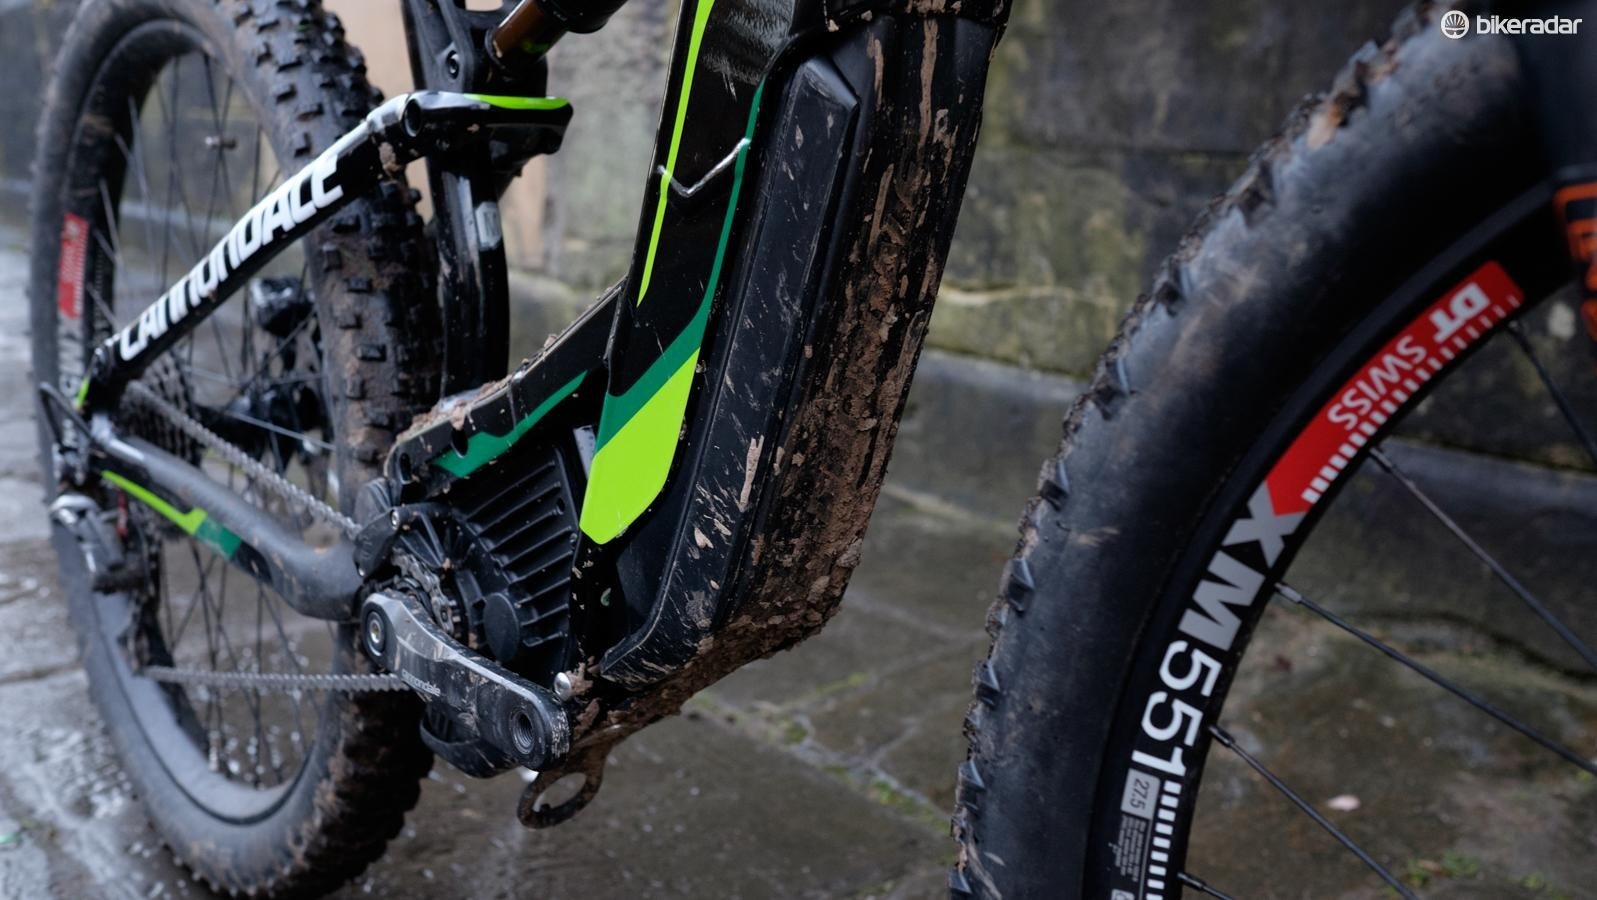 Cannondale's BatStrap is a slightly crude rubber strap that's used to secure the frame-mounted battery in an attempt to minimise the rattling noises often encountered with the e-MTB batteries